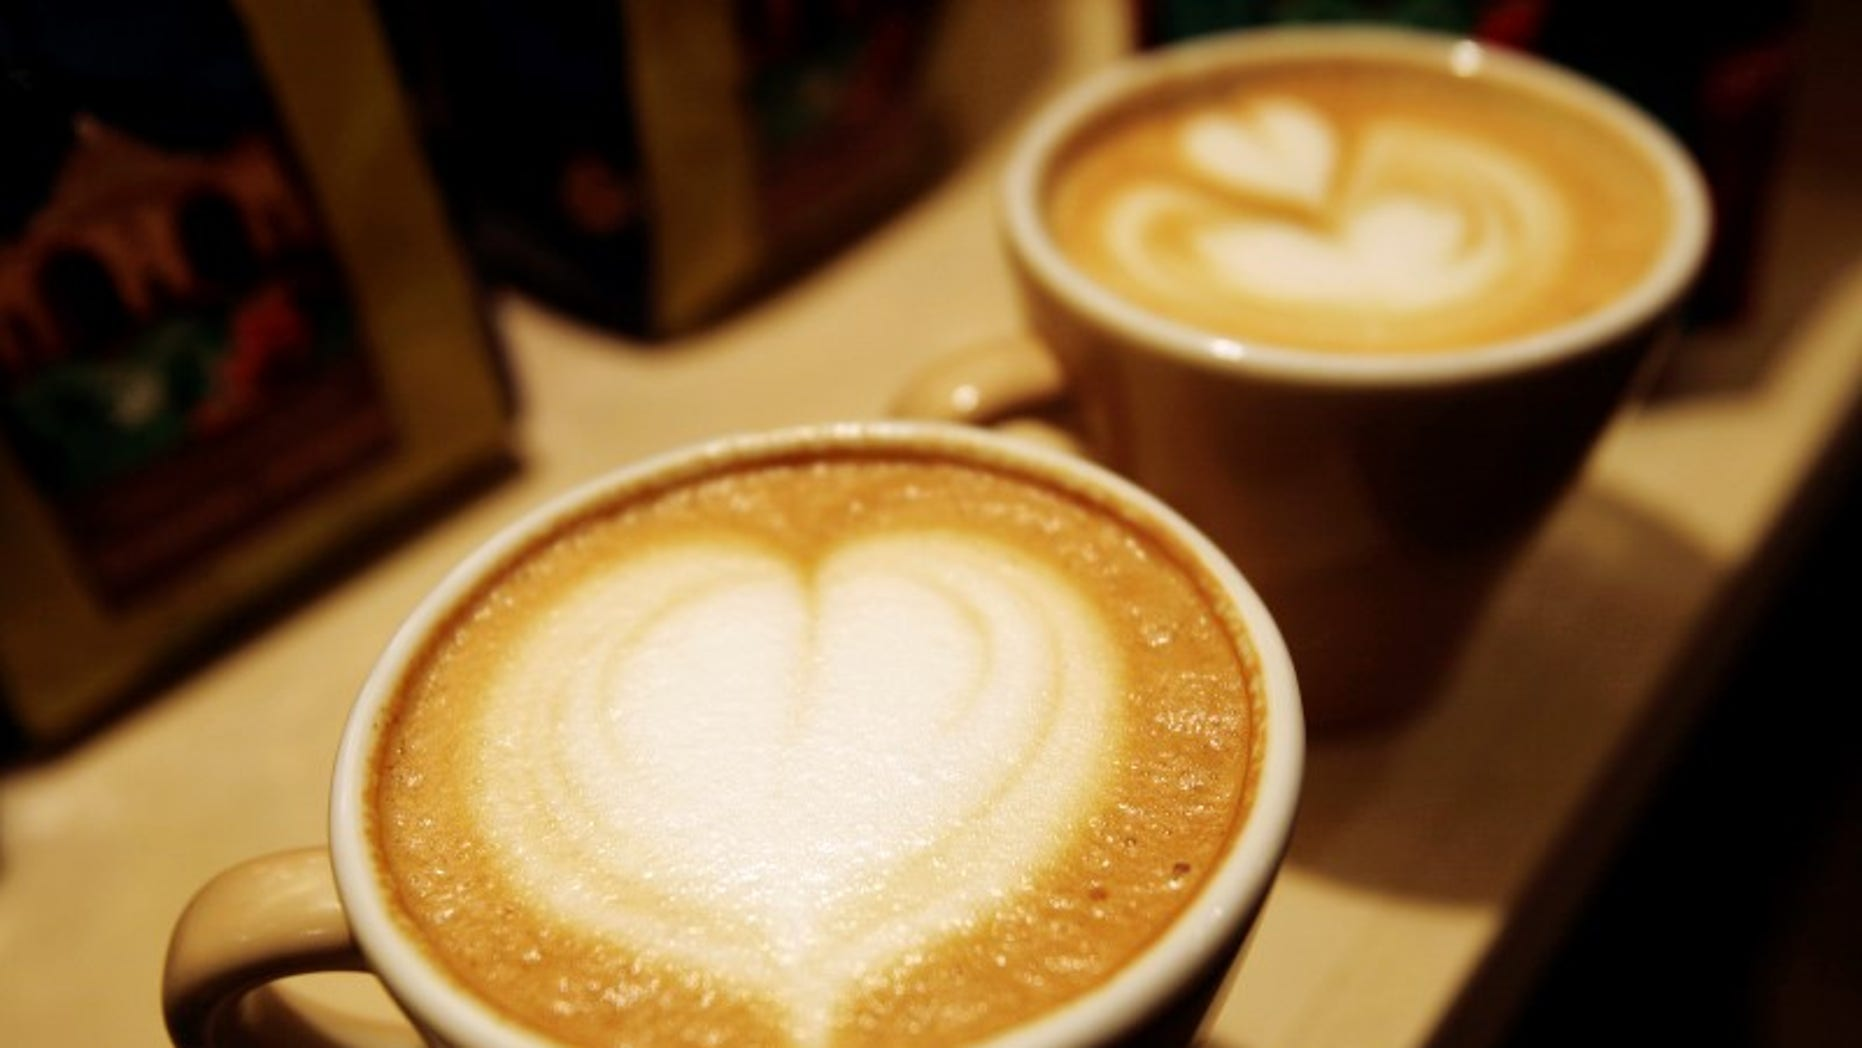 Cups of cappuccino sit on a table during the World Coffee Conference in Guatemala City